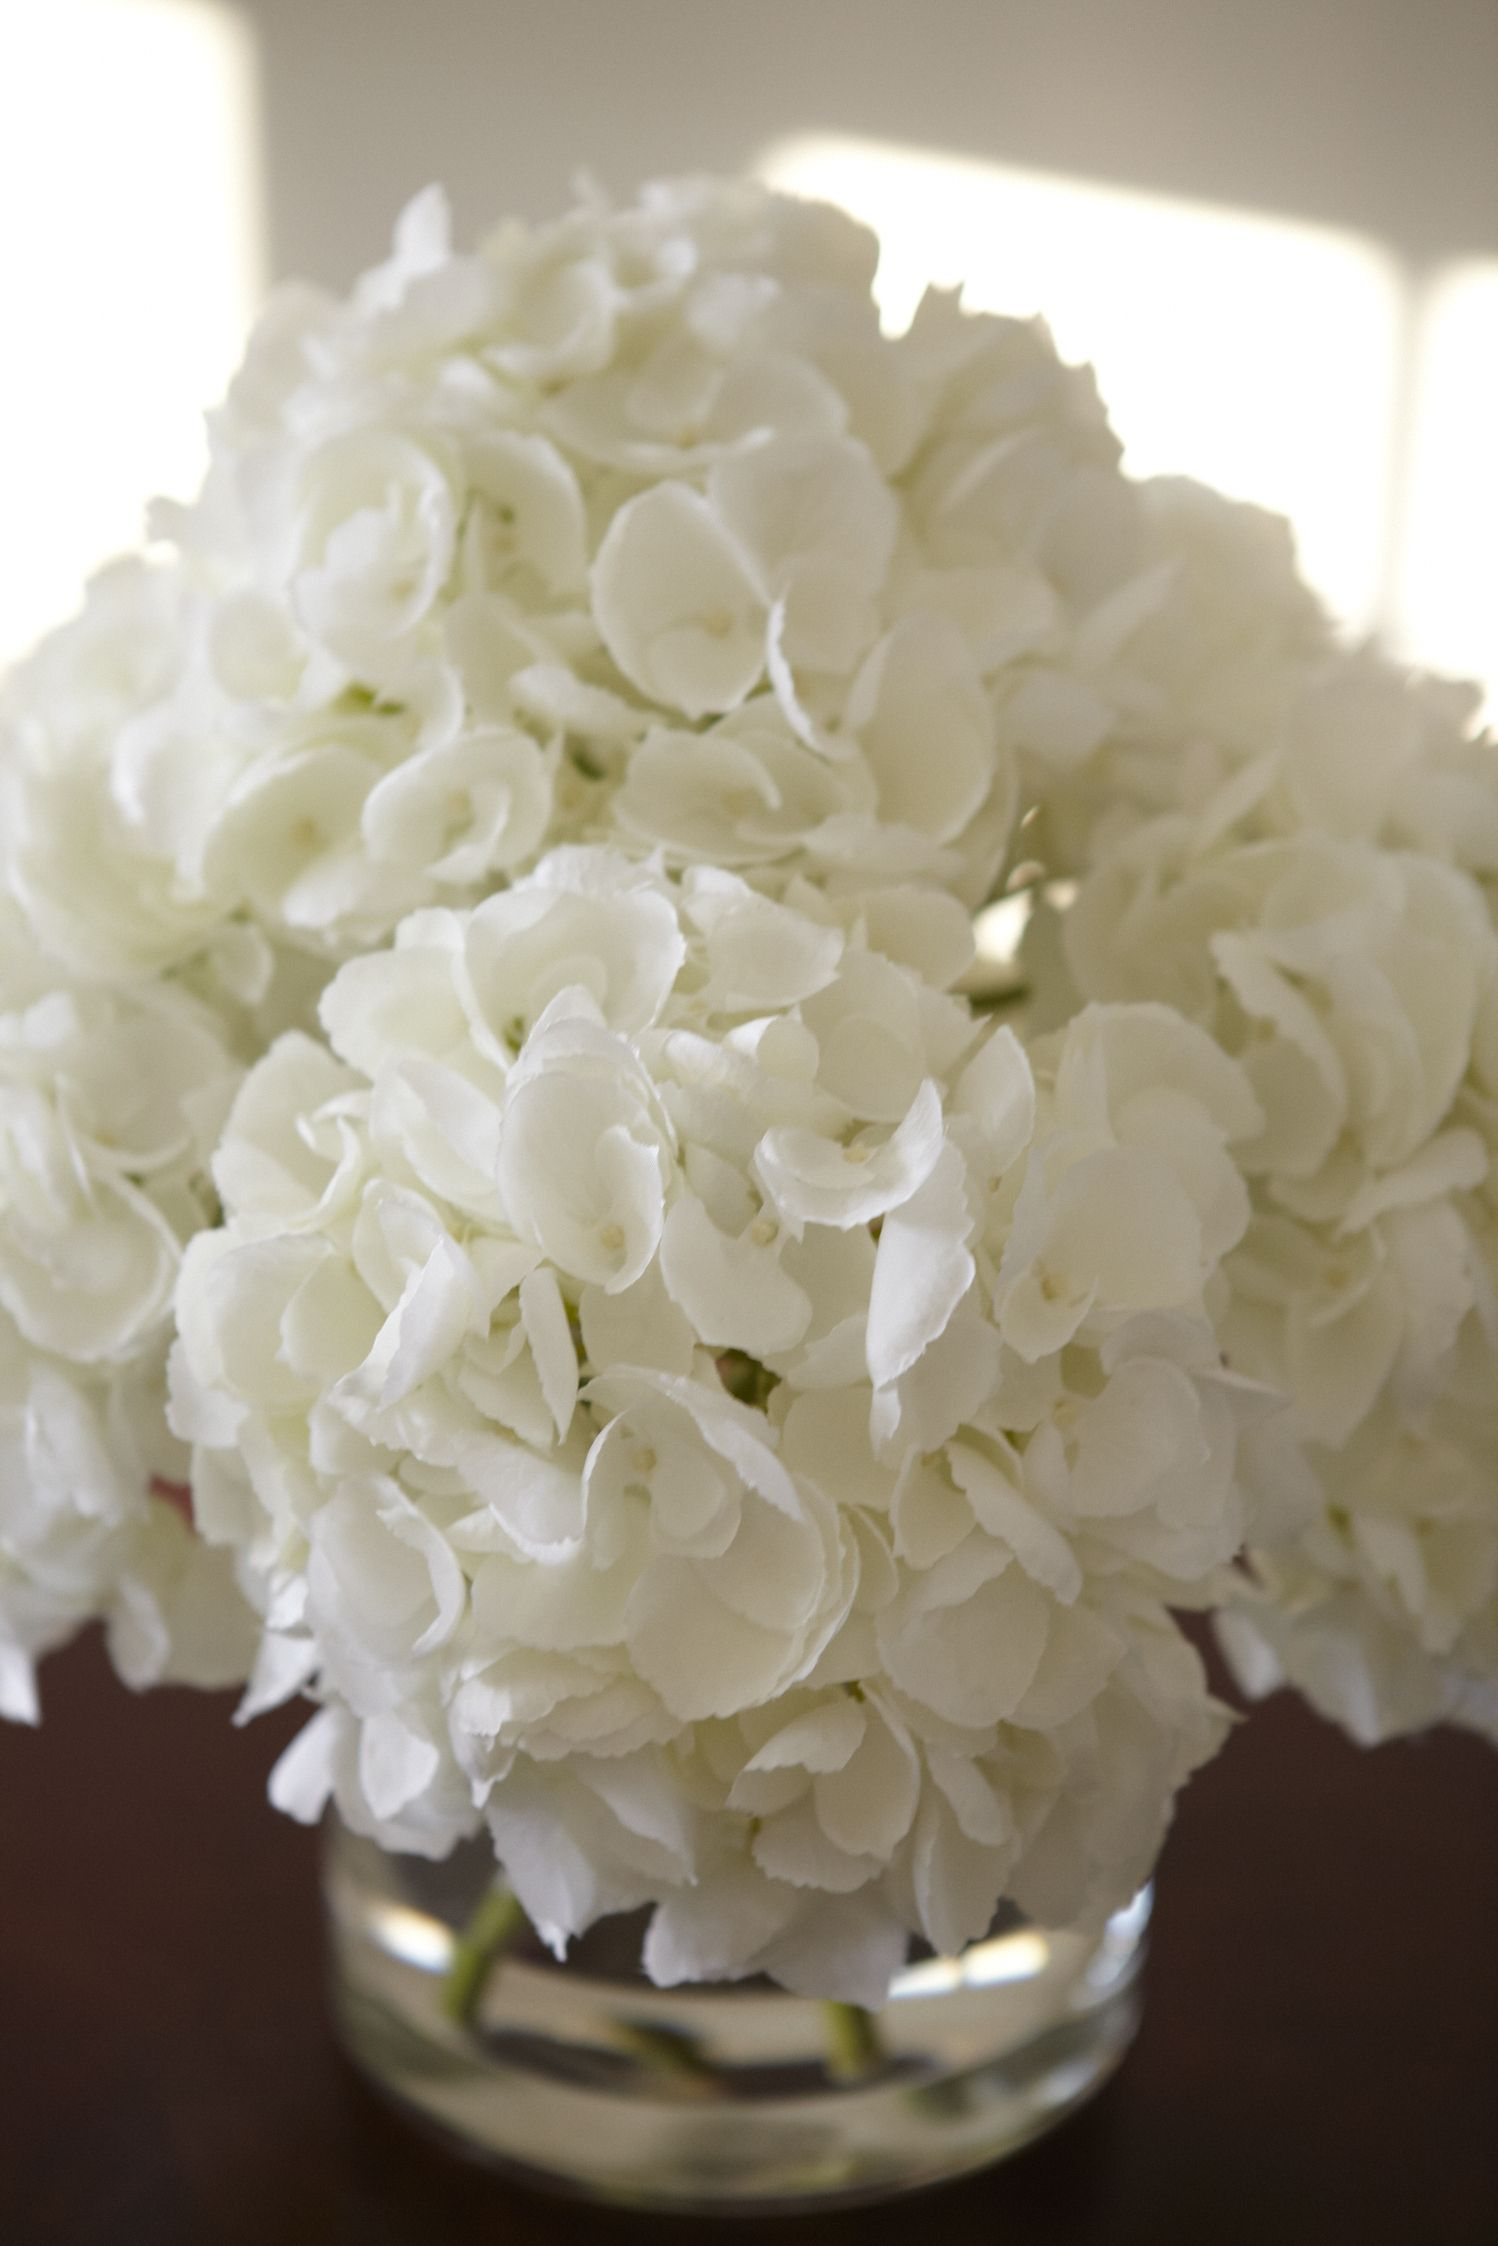 Pflower Lovers Of All Kinds Delight In The Incomparable Beauty Of